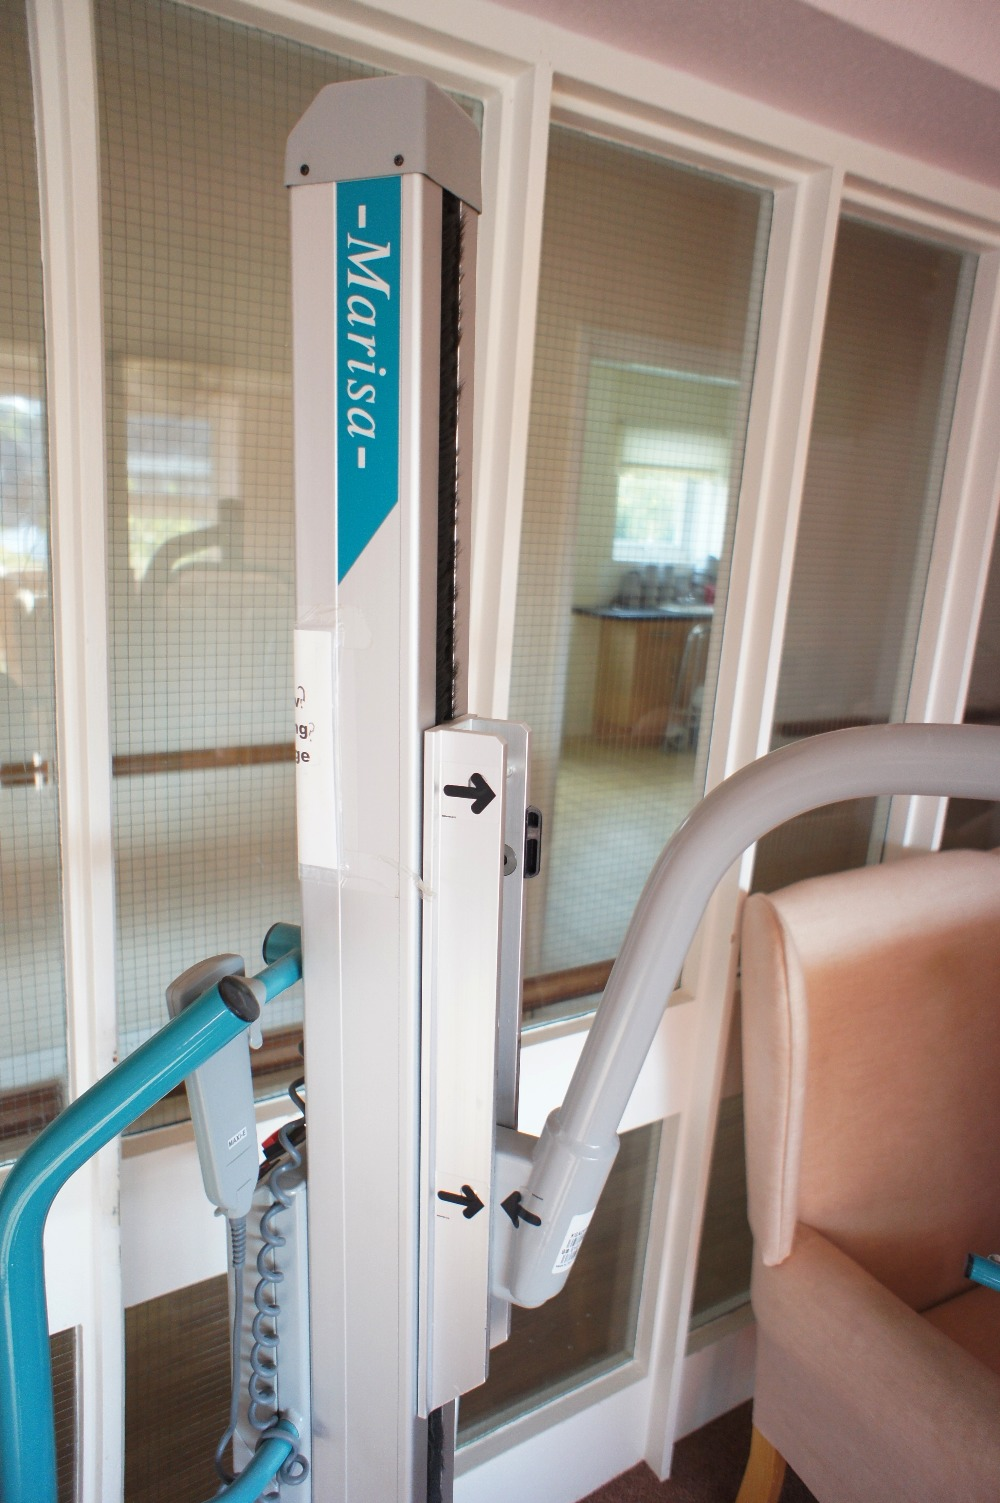 Lot 51 - 1 ARJO Marisa electrically operated a patient hoist/lift (located in room 18, Davey Court)